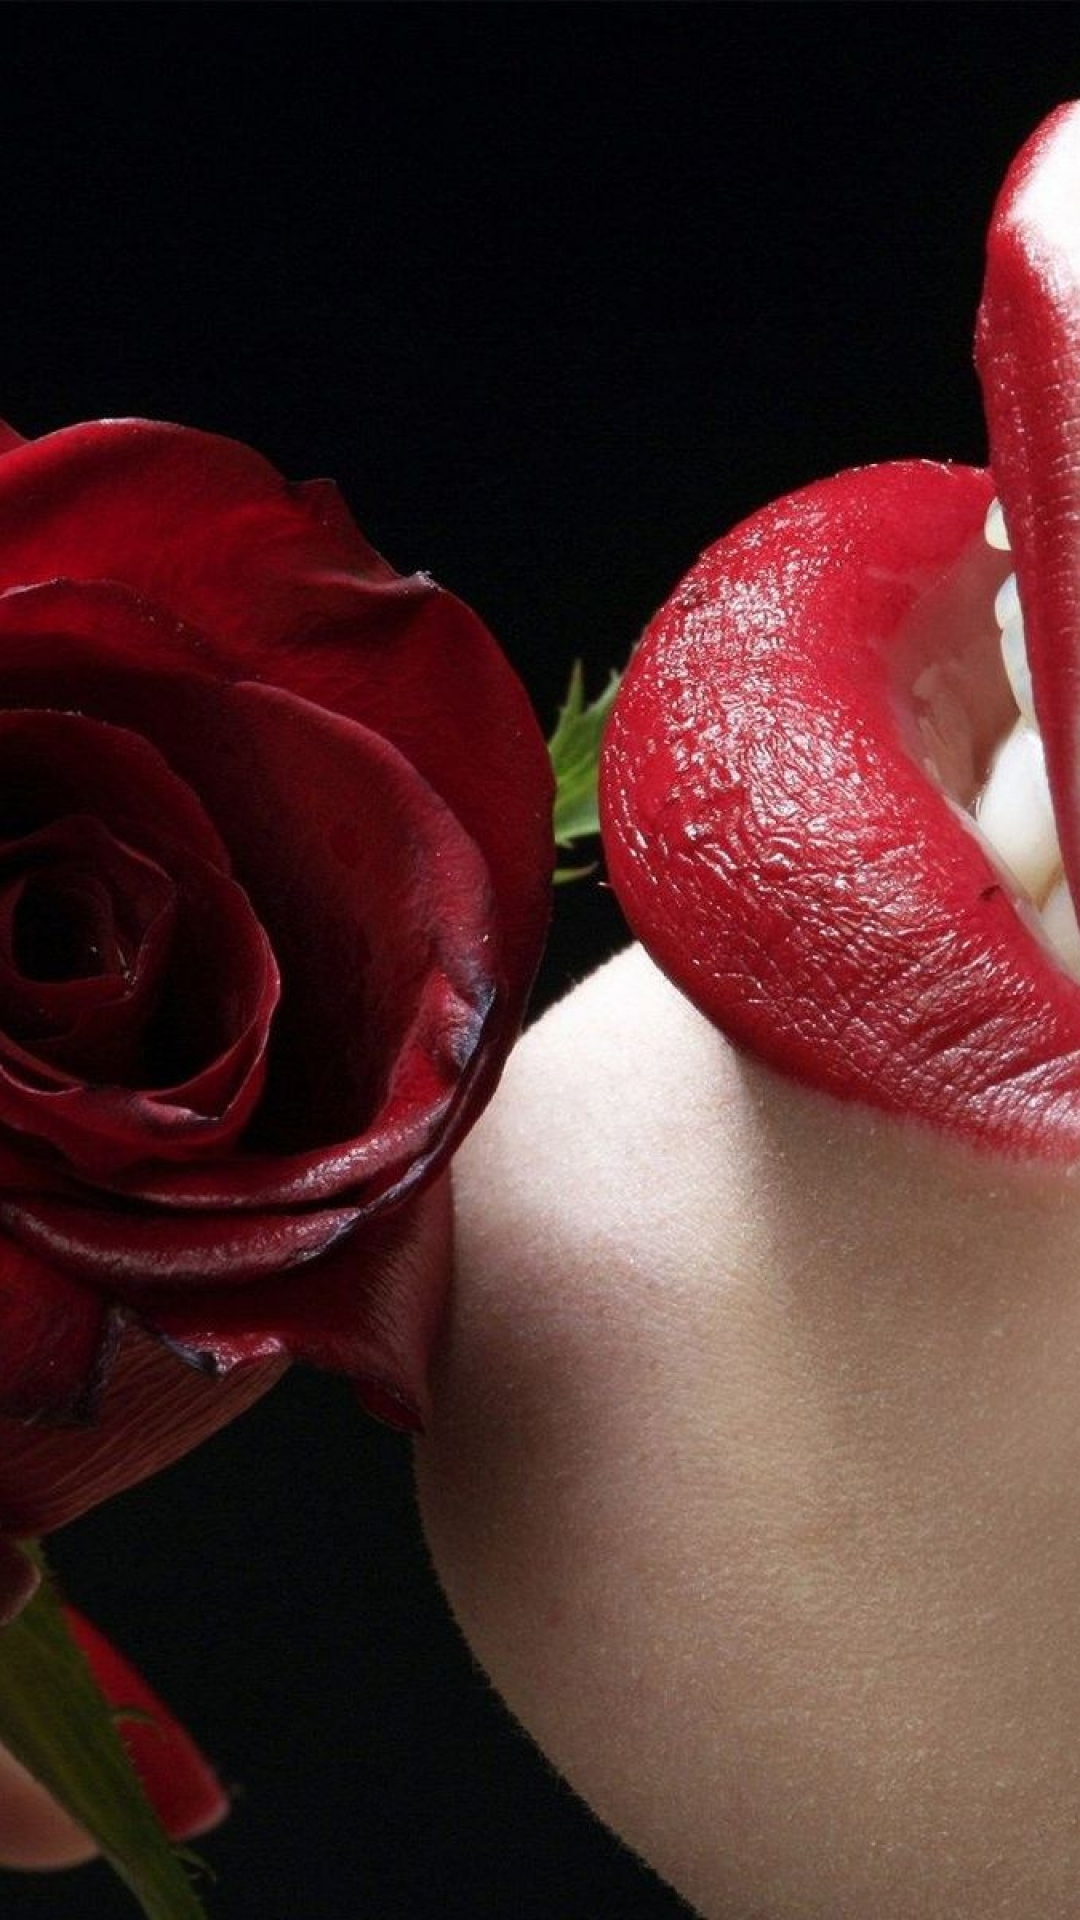 Htc M8 3d Wallpaper Red Lips Rose Best Htc One Wallpapers Free And Easy To